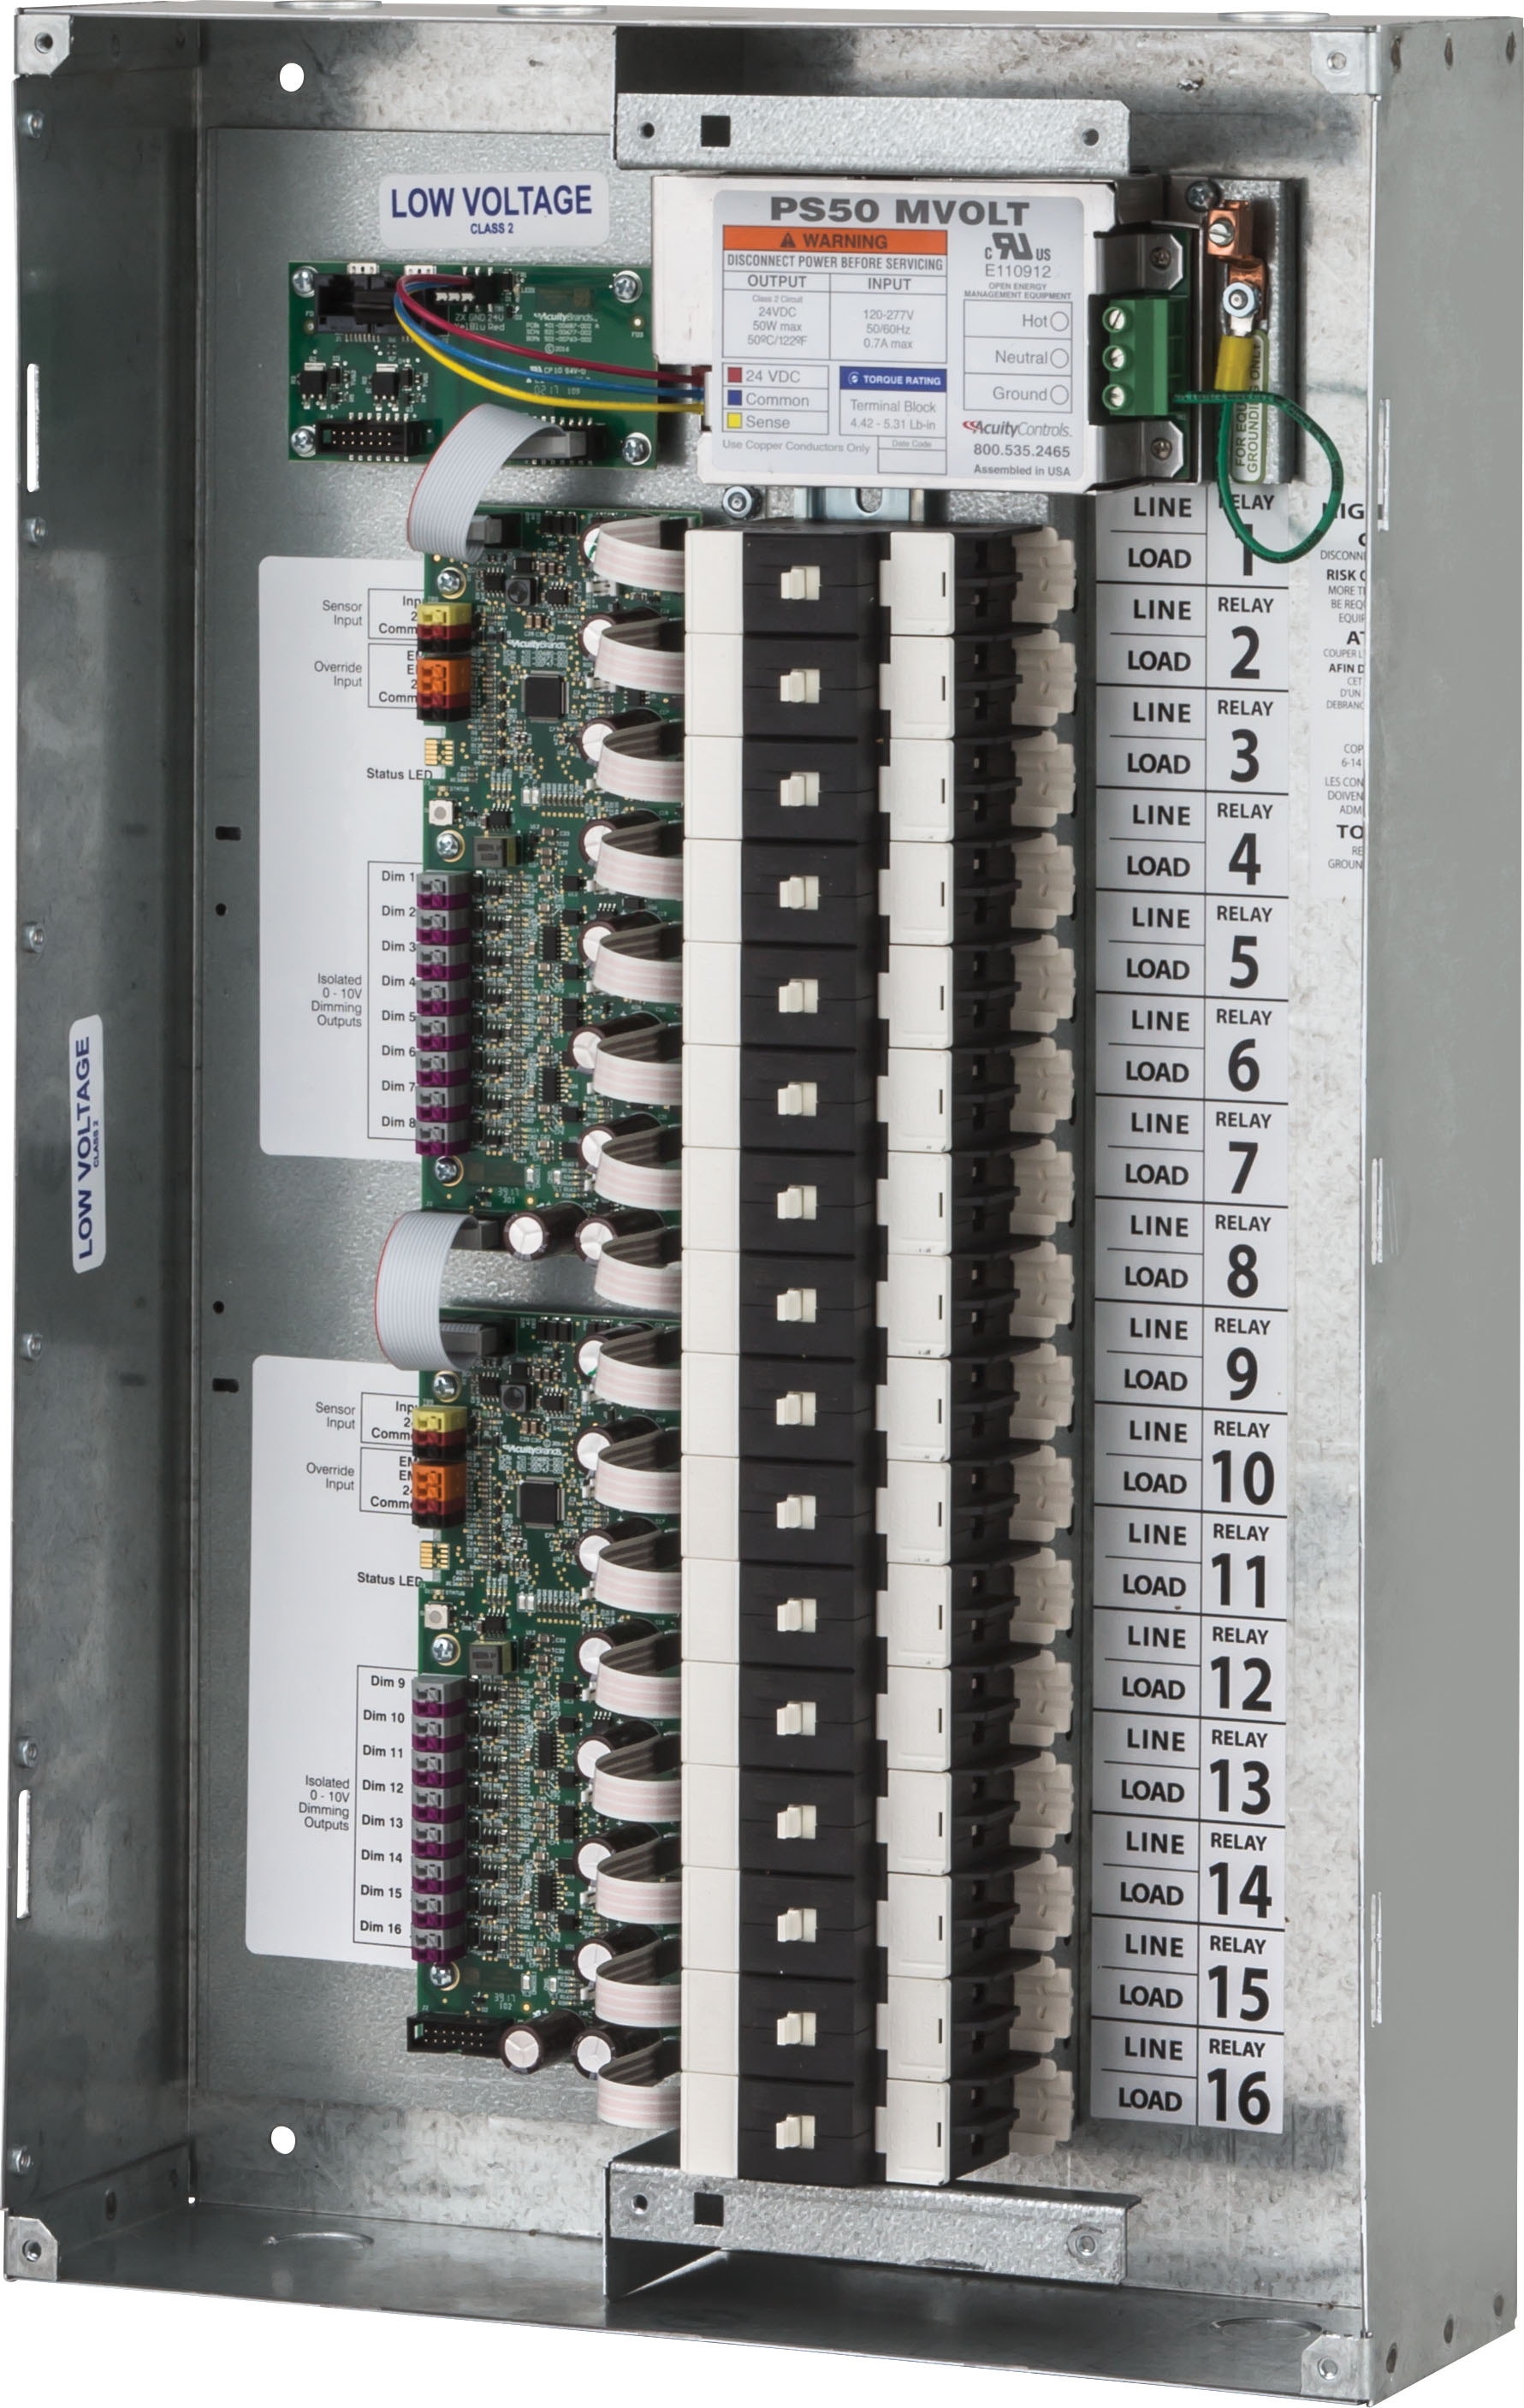 nLight ARP Relay Panel 16 left facing interior sans cover.jpg